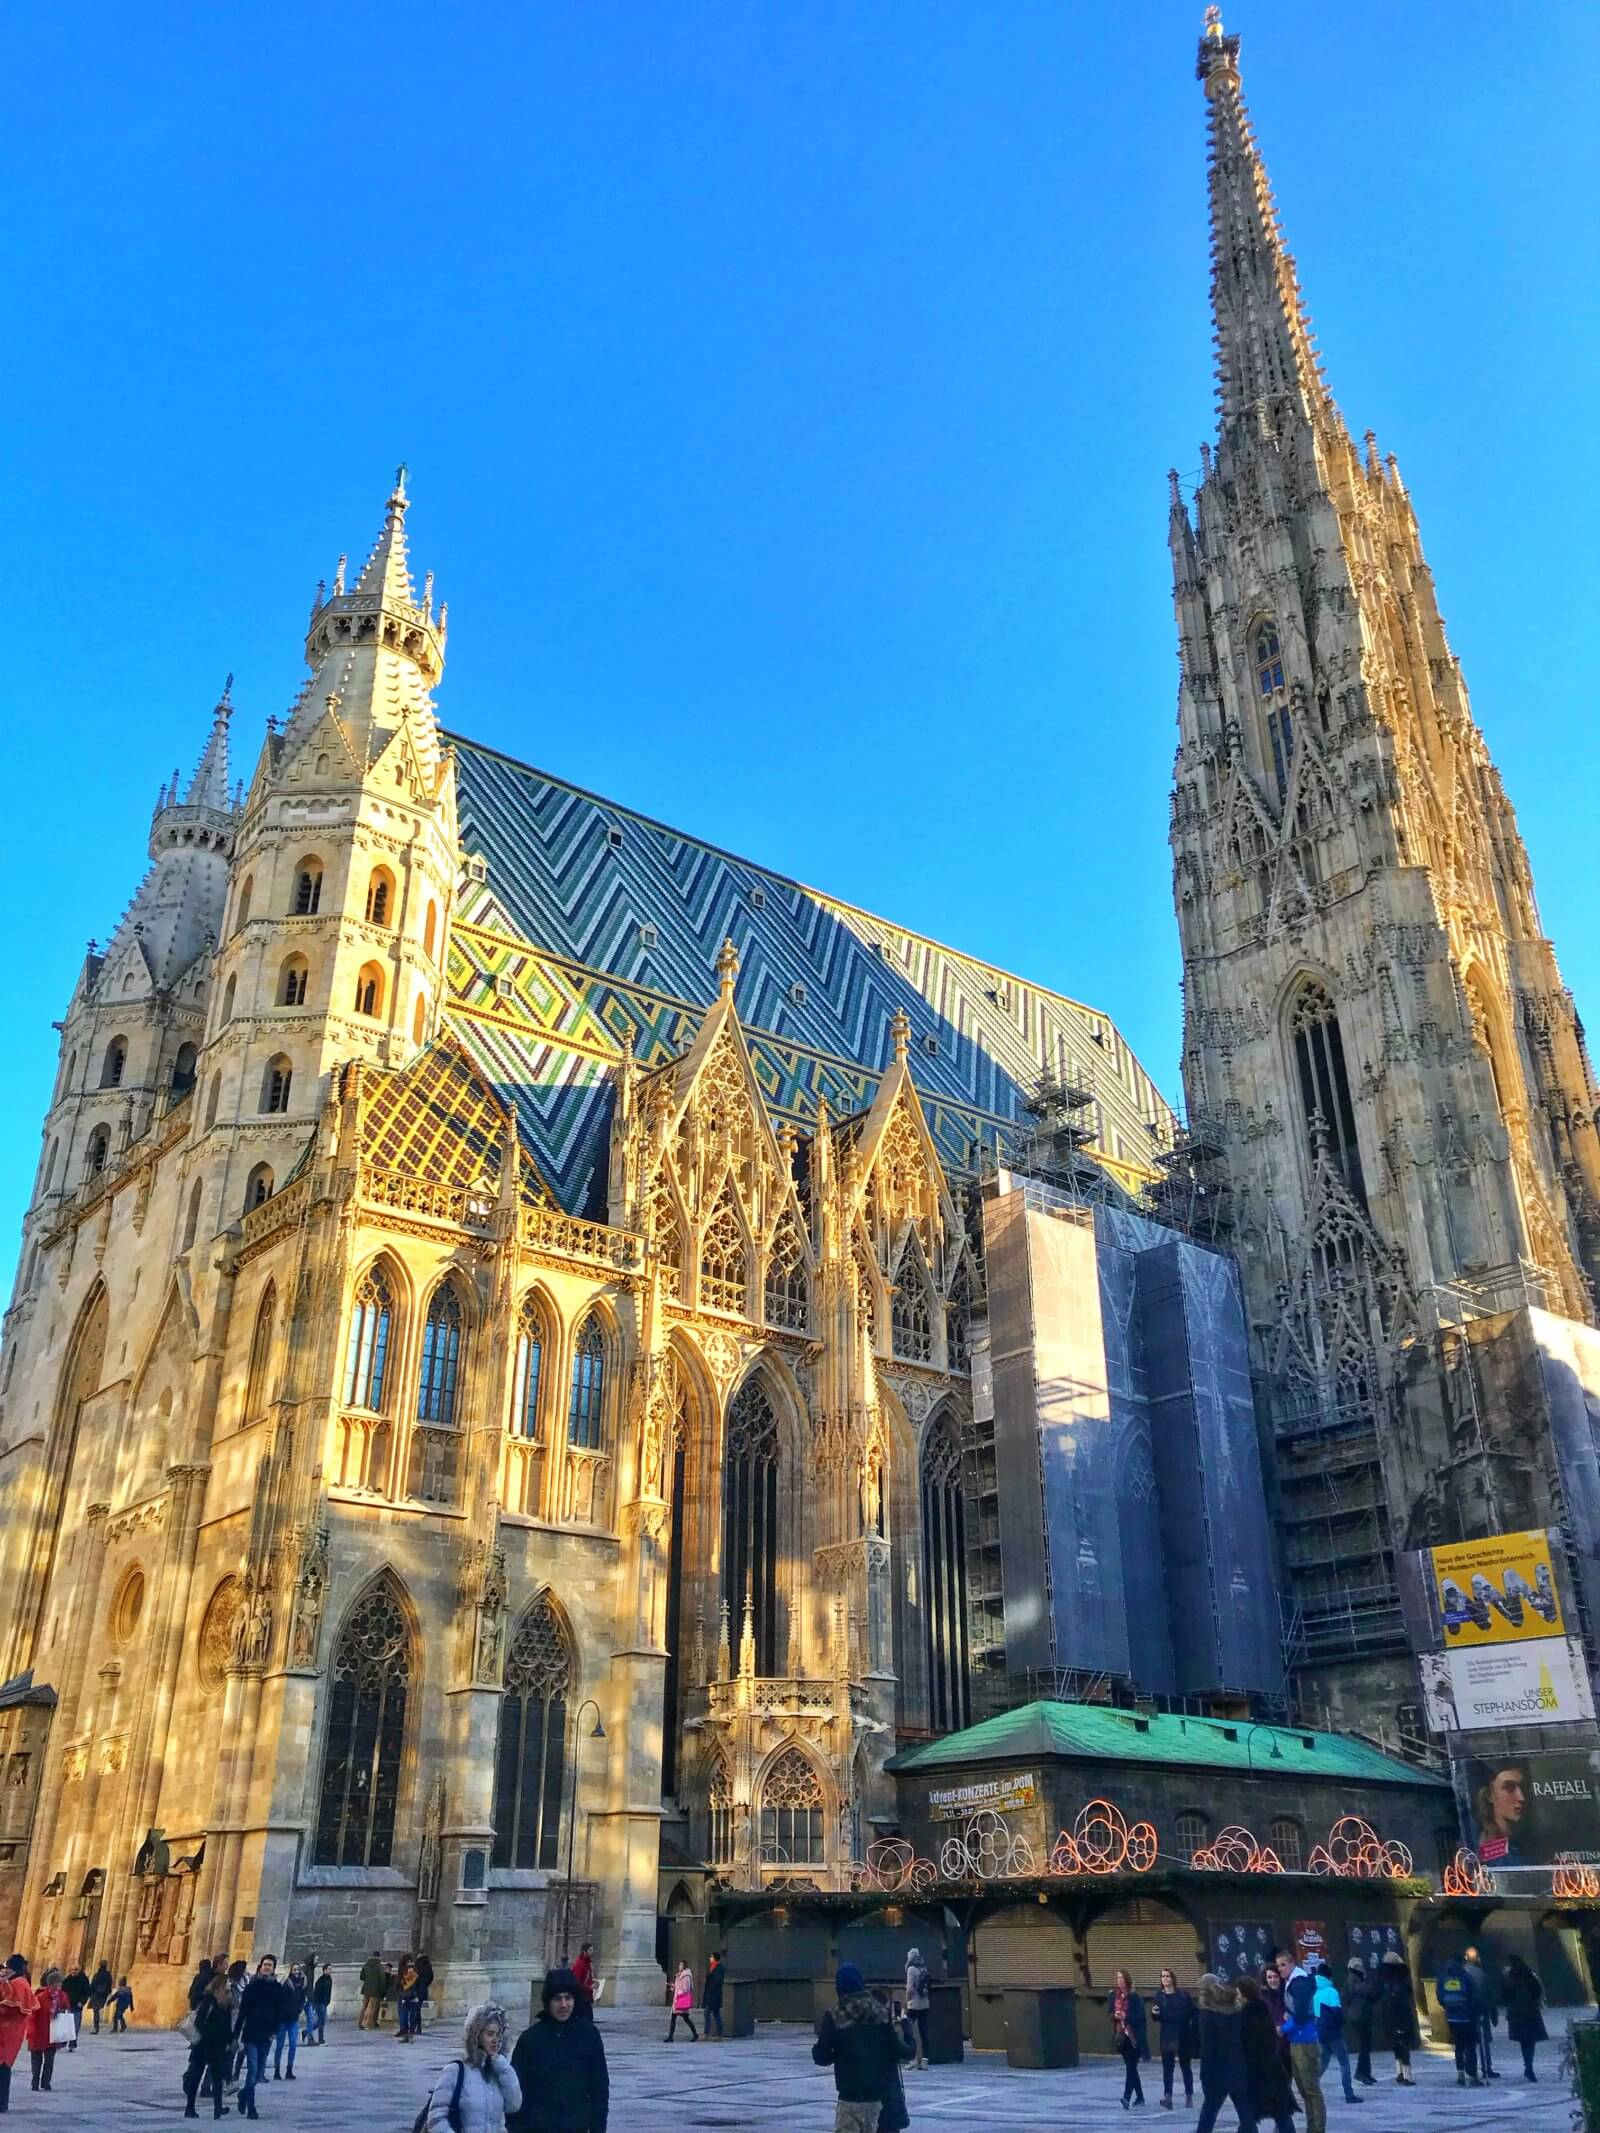 St Stephen's Cathedral, Vienna in winter